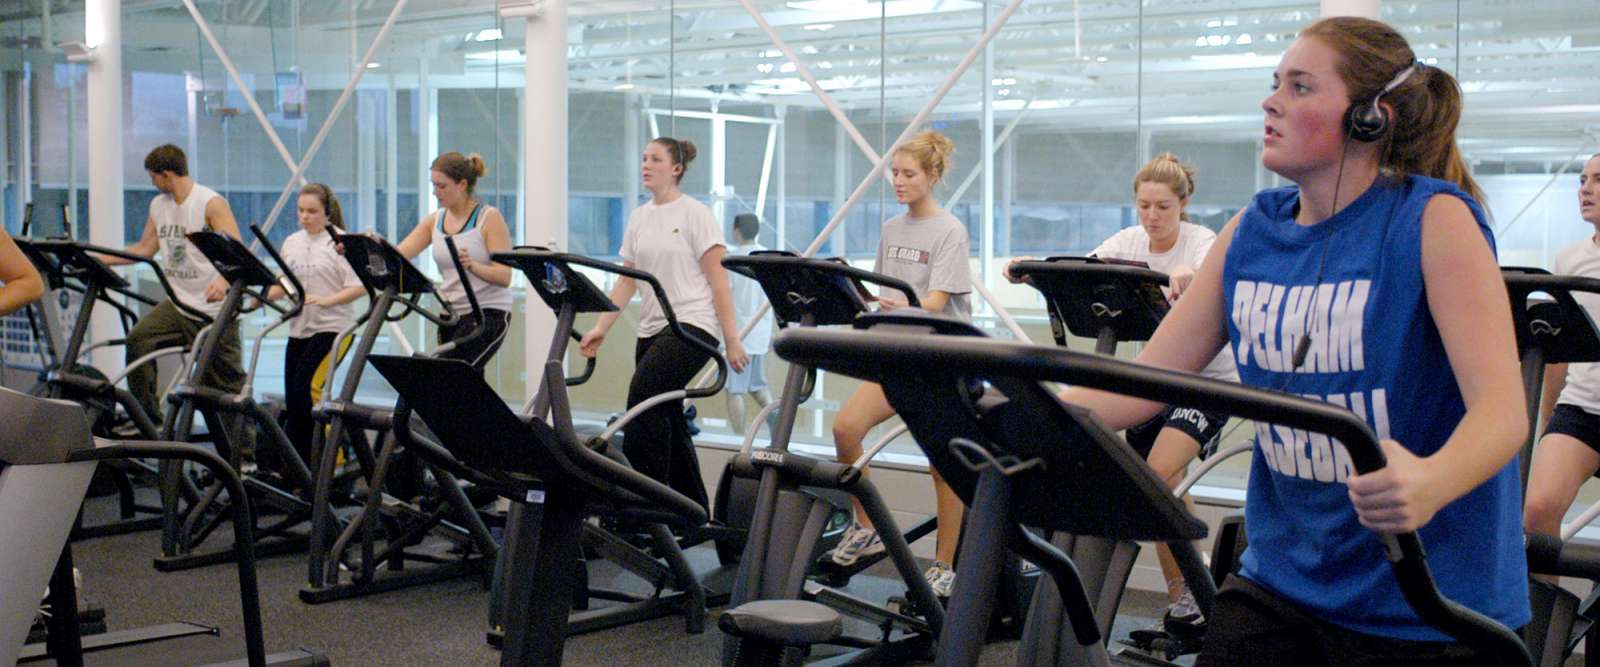 Recreational Sports: Jog Machines